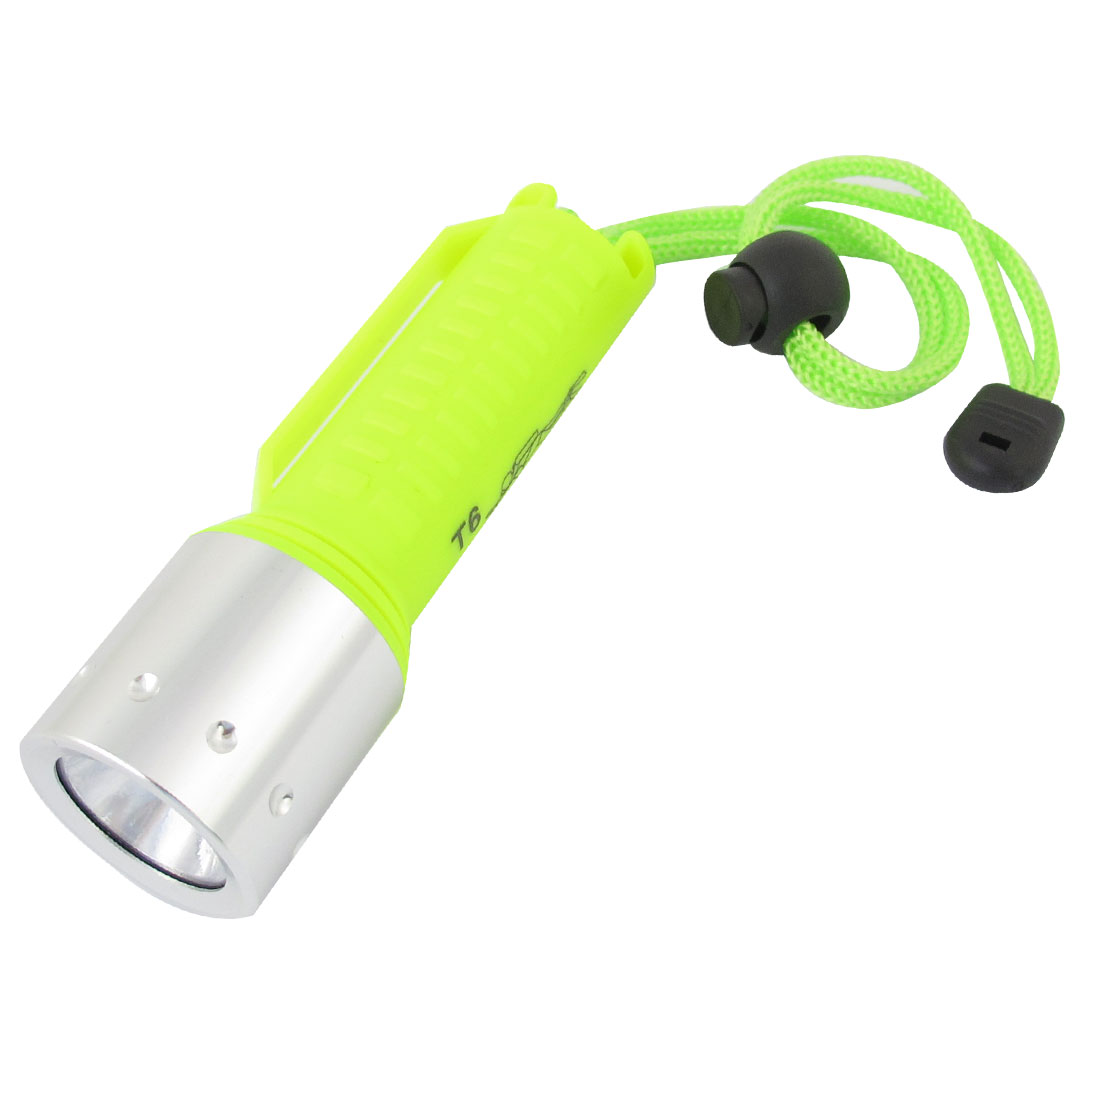 200-800LM T6 LED Diving Flashlight Torch Waterproof Light Yellow Silver Tone